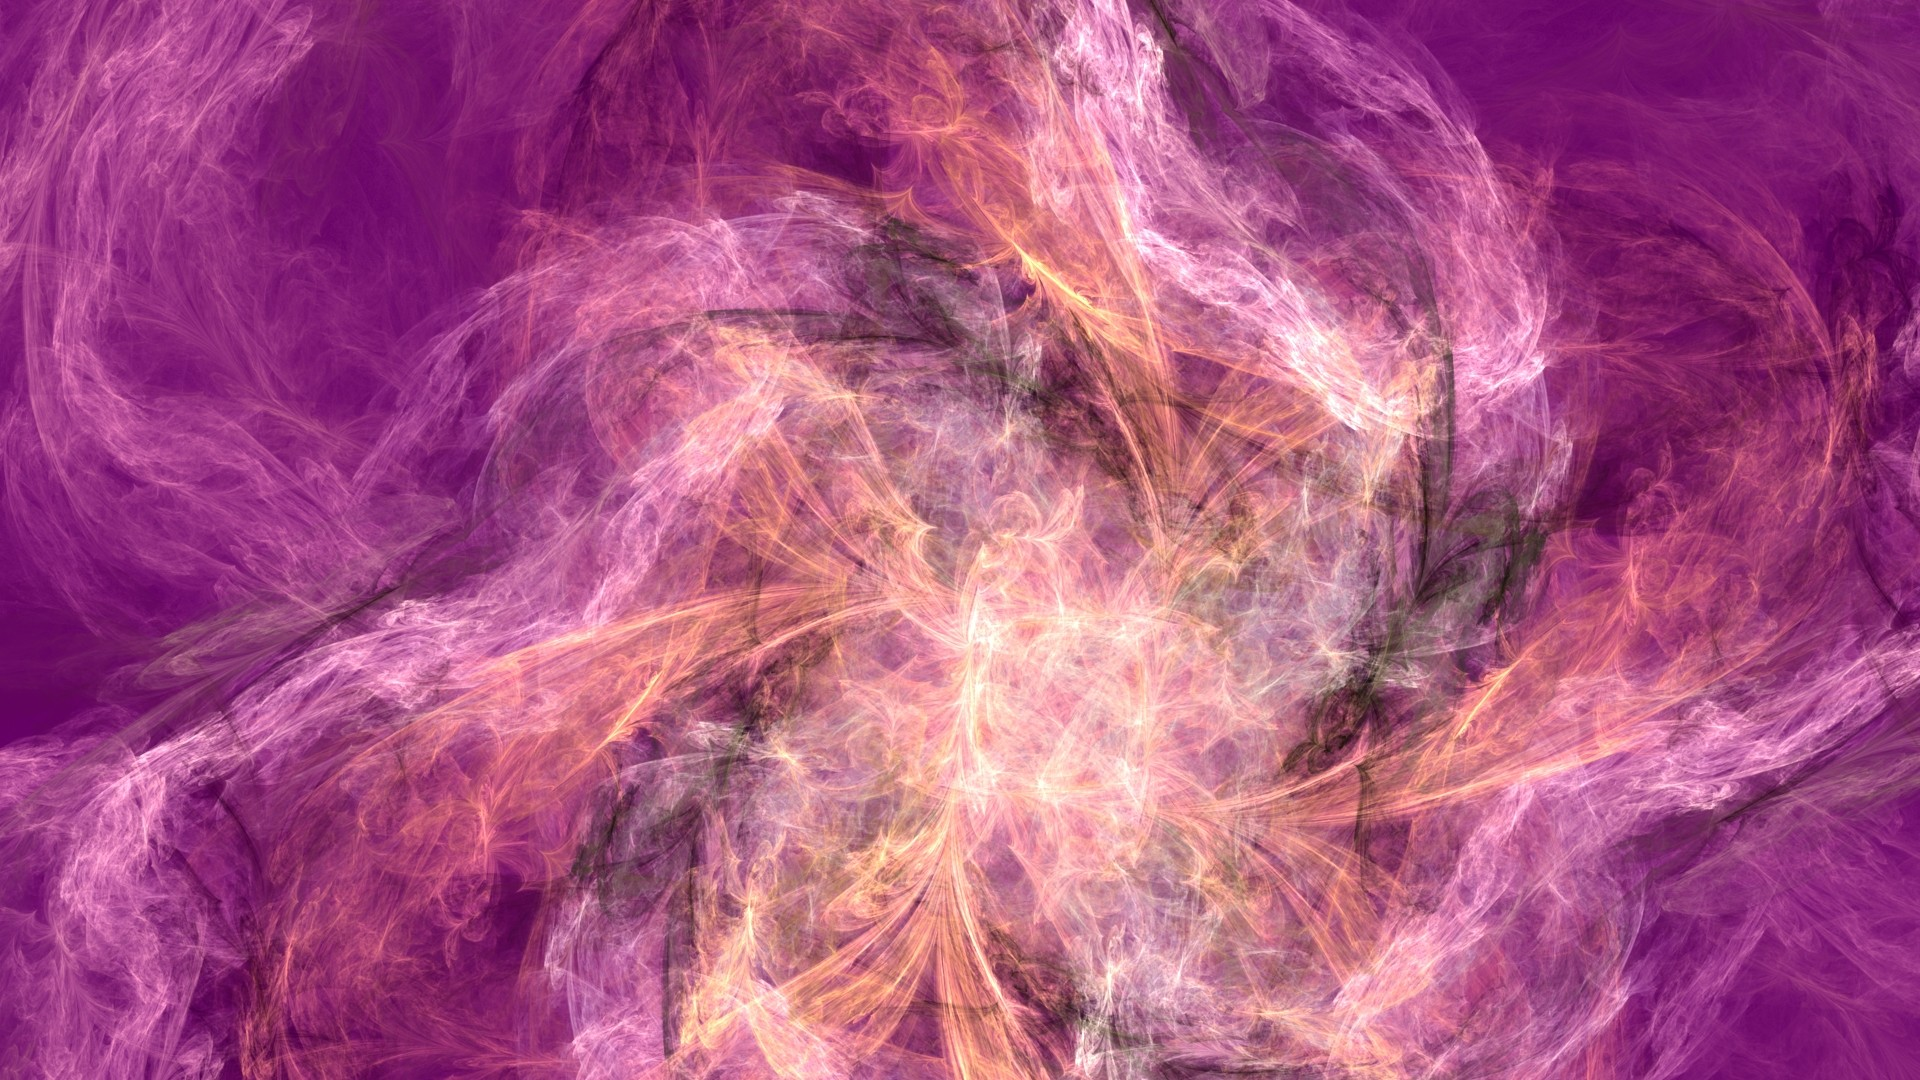 This entry was posted in Flame fractals JWildfire Wallpaper Format Image